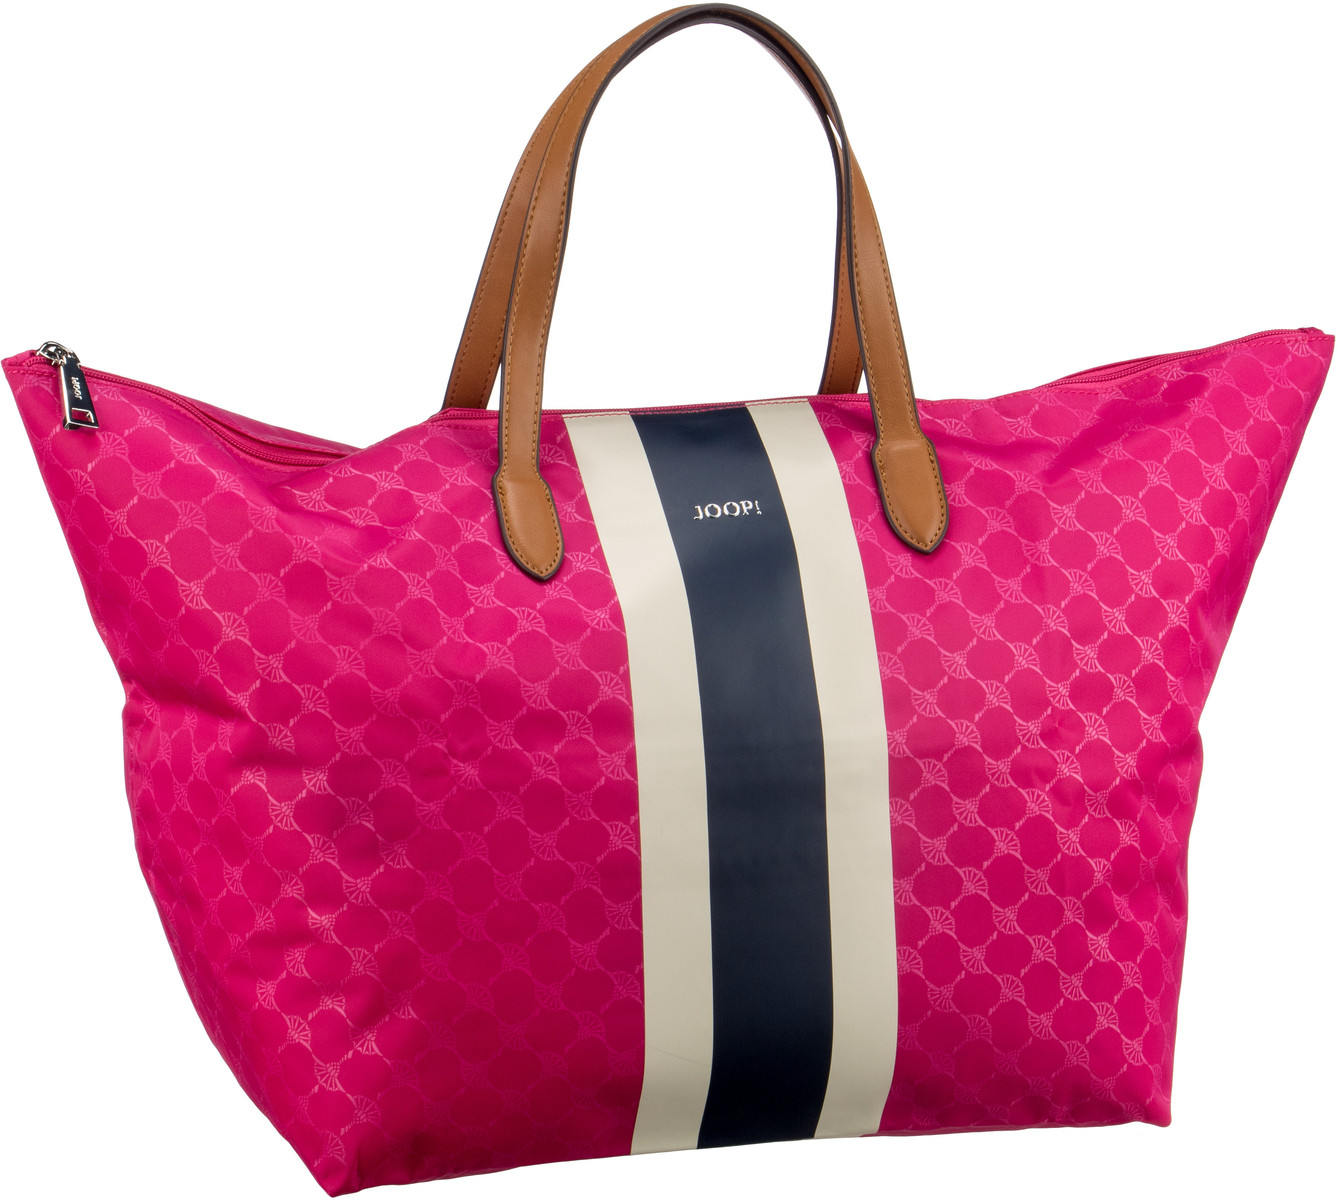 Shopper Piccolina Due Helena HandBag XLHZ1 Fuchsia